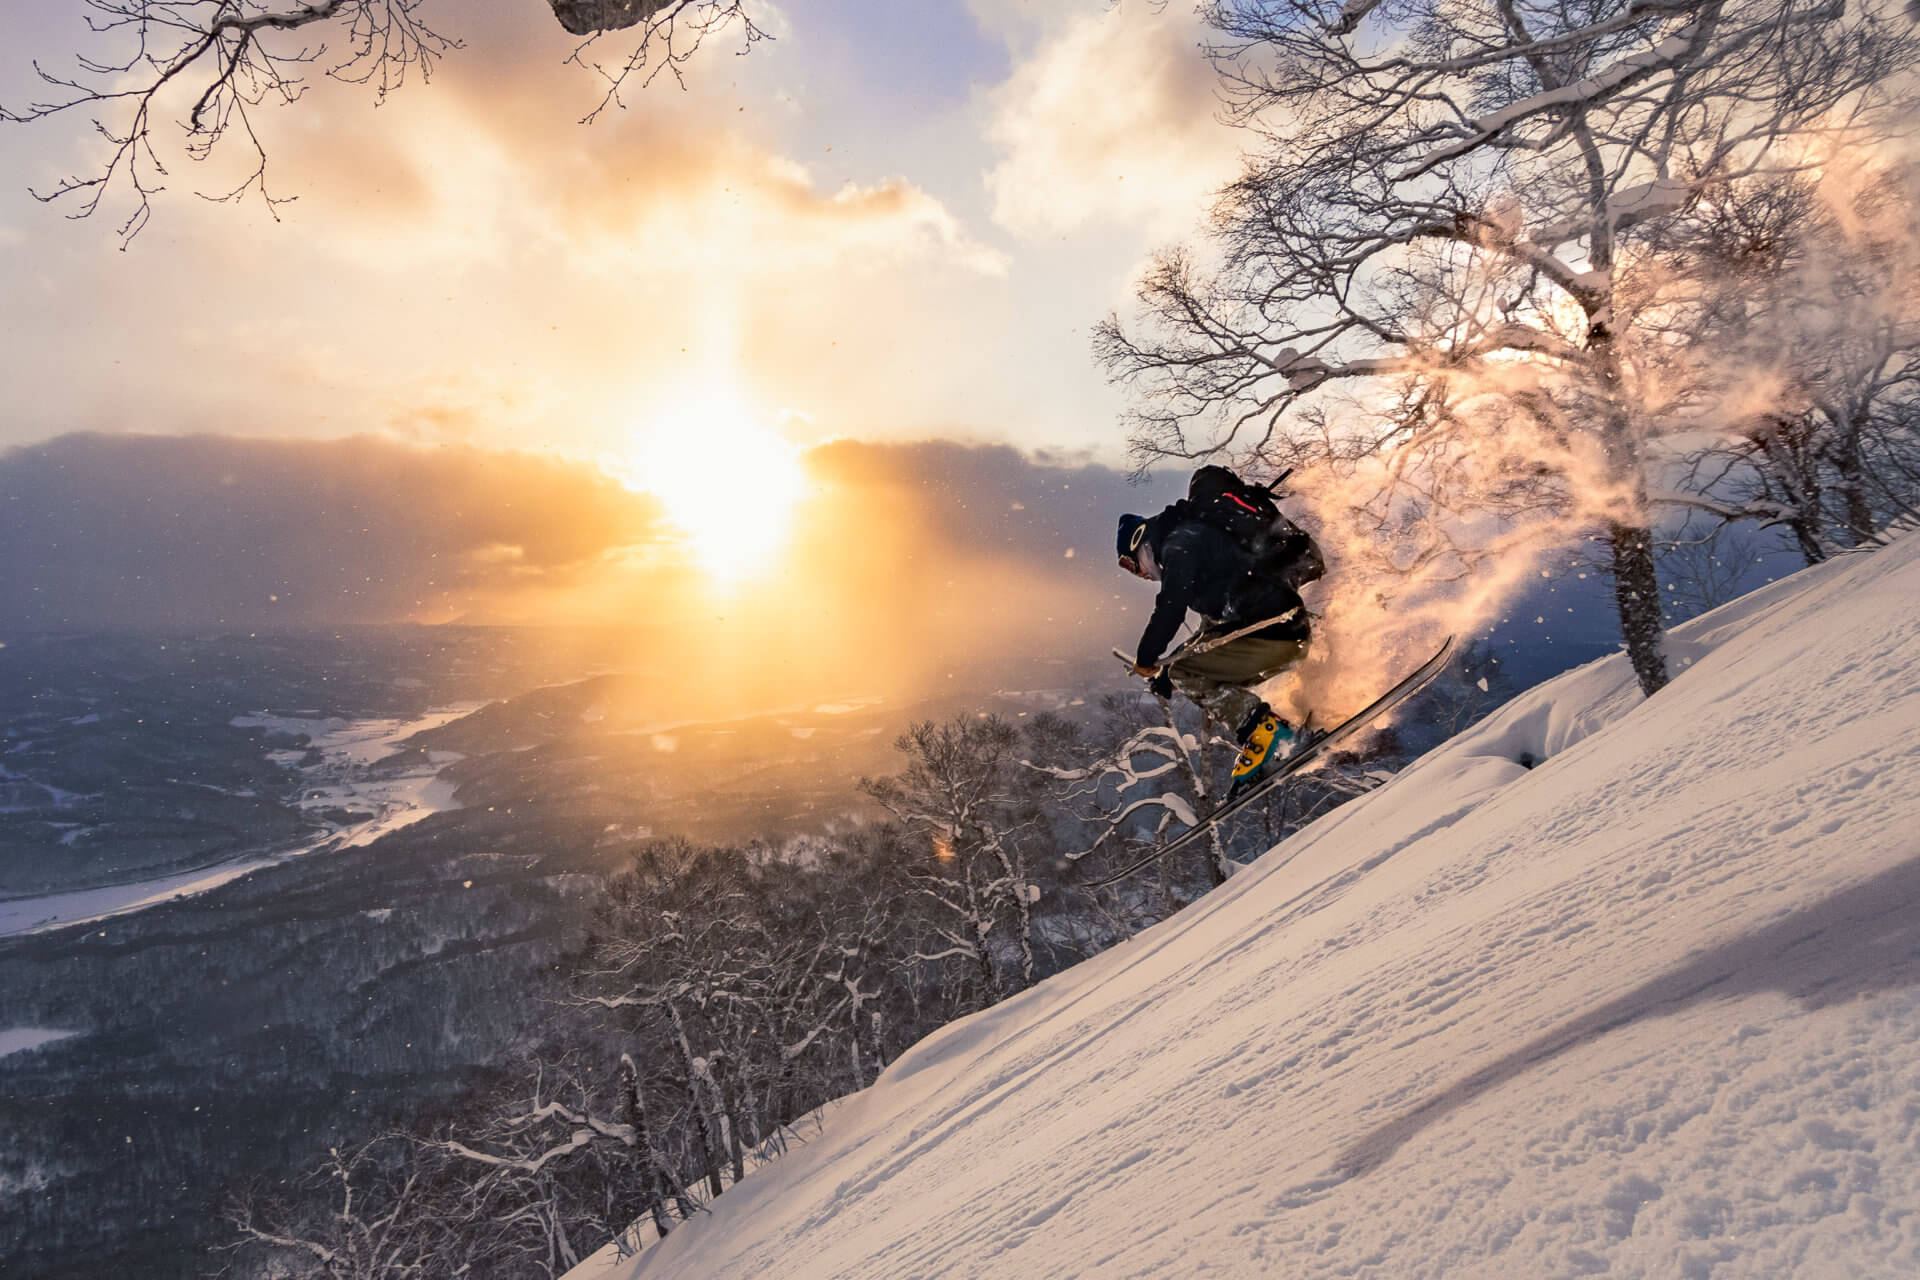 Saki Hayashi x Niseko Zen - Mountain Sports and Lifestyle. 2020